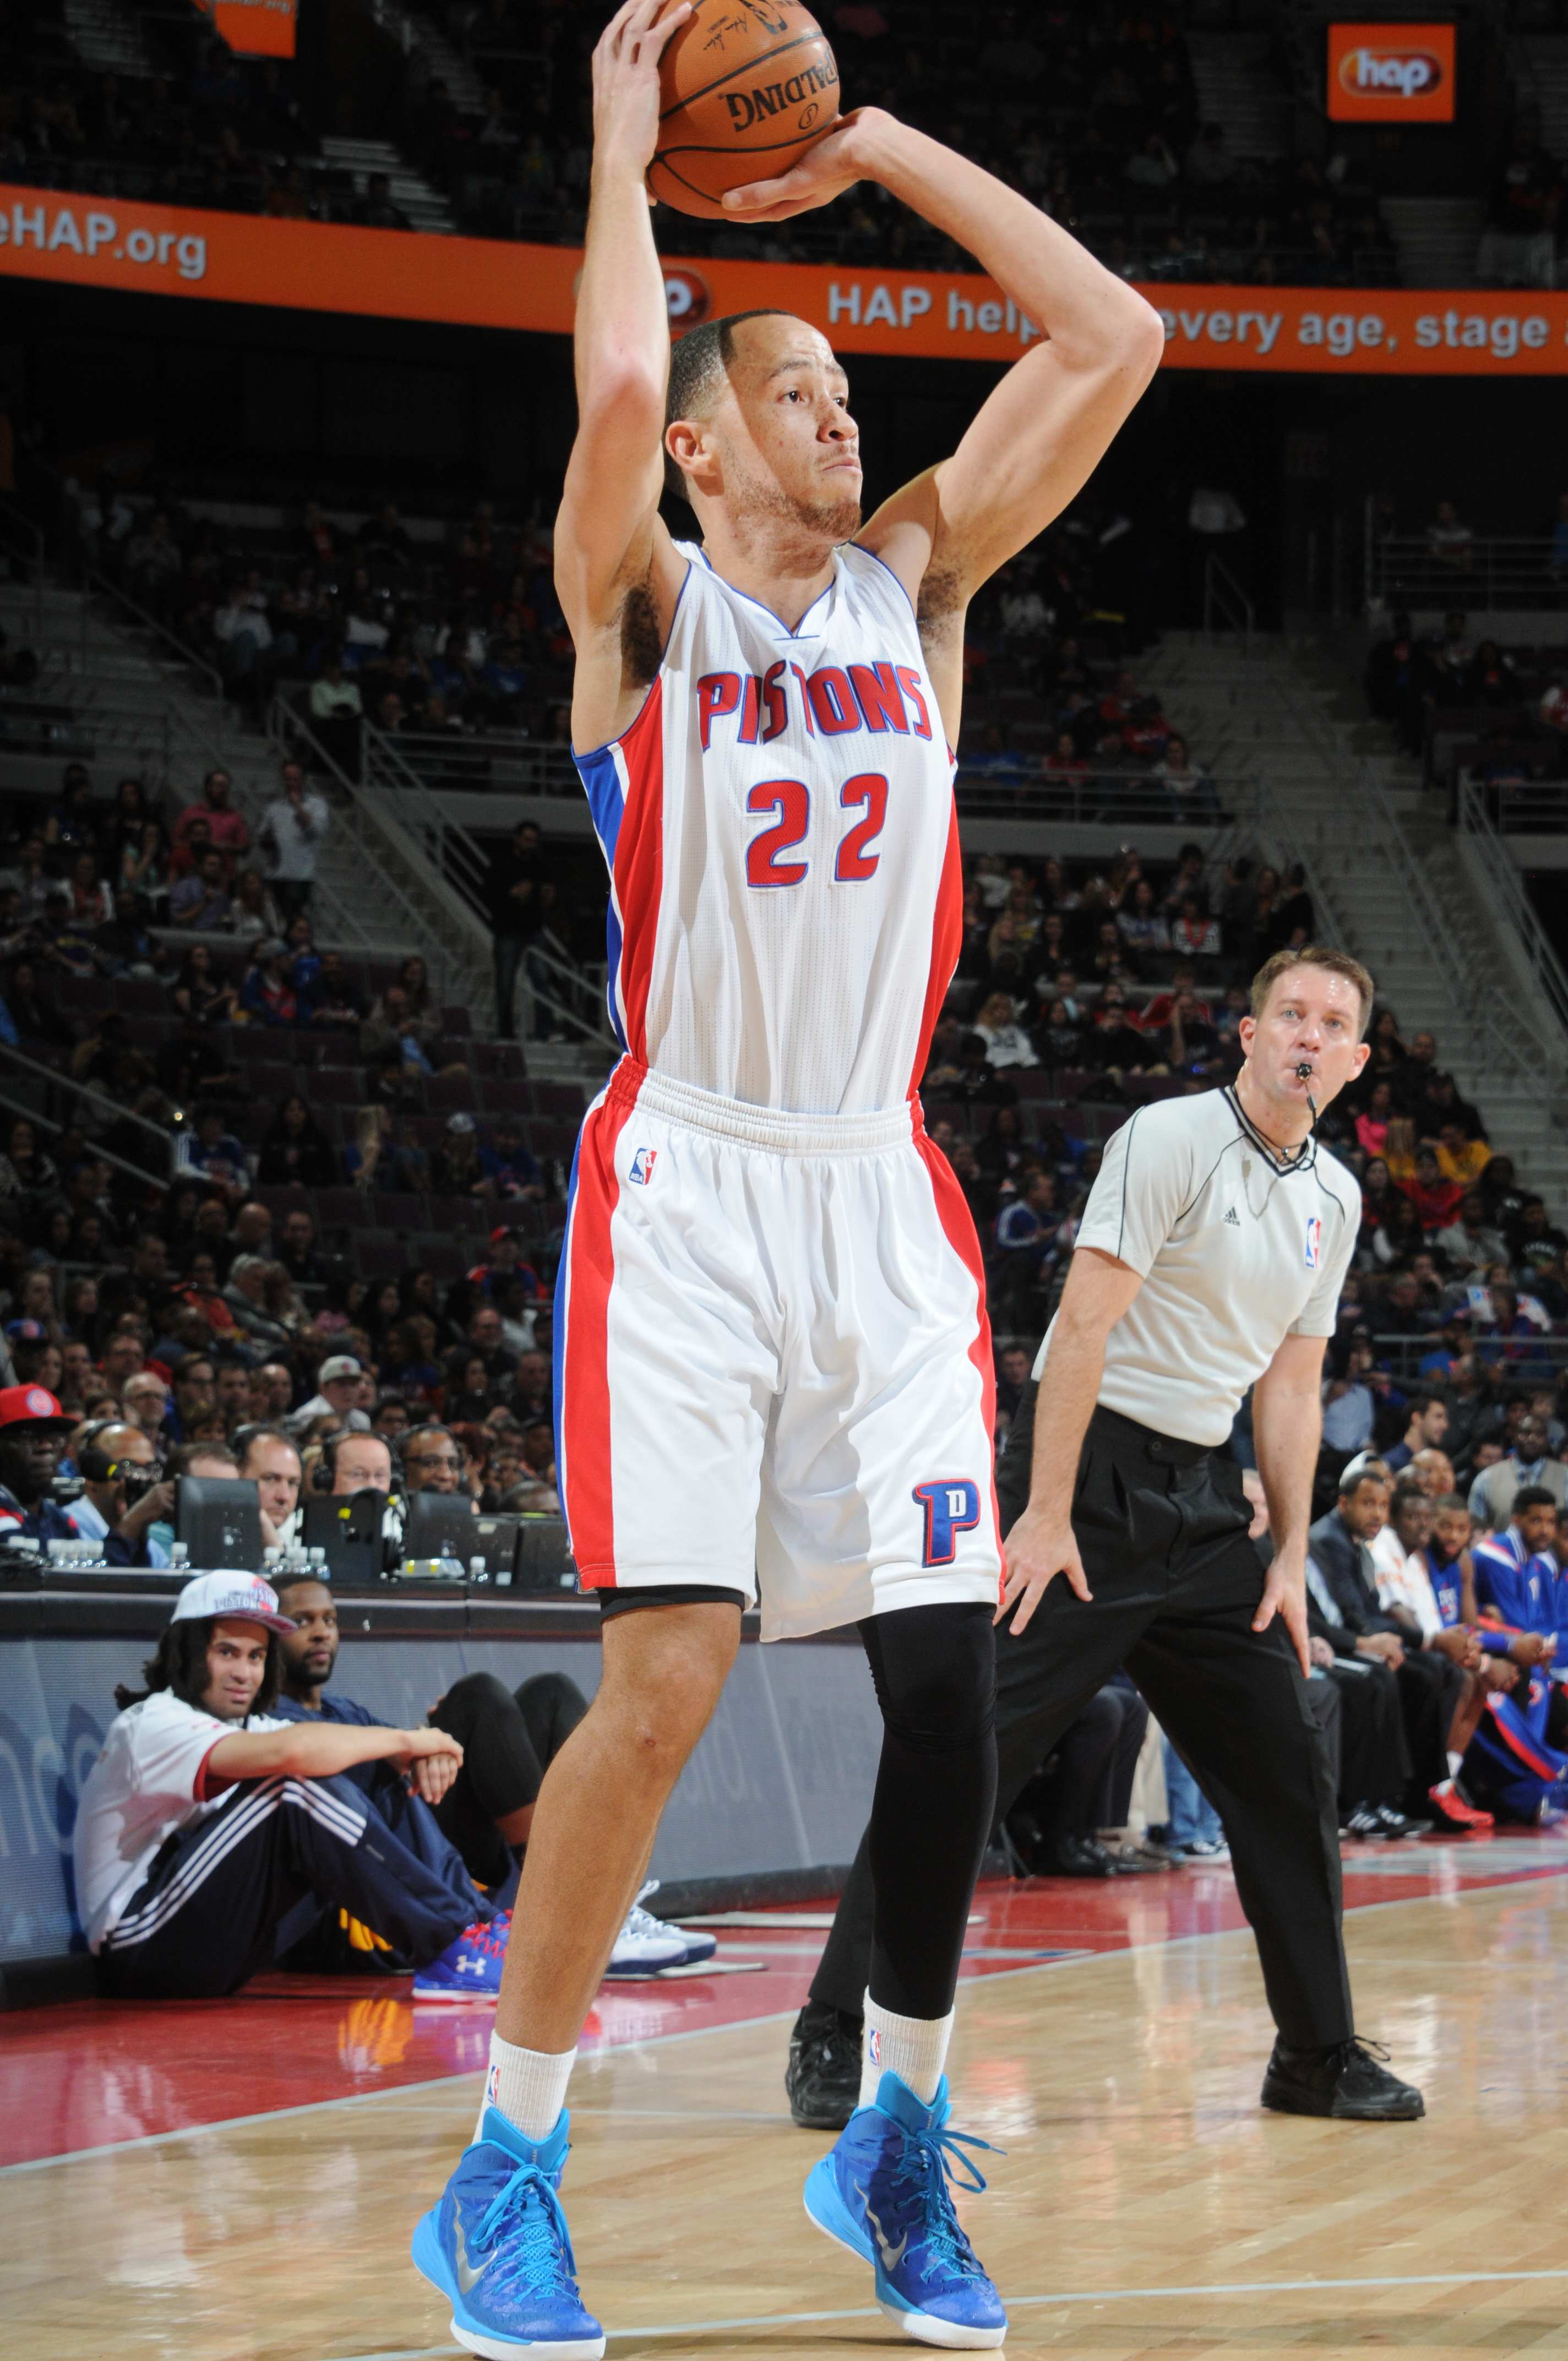 DETROIT, MI - APRIL 10: Tayshaun Prince #22 of the Detroit Pistons shoots against the Indiana Pacers during the game on April 10, 2015 at The Palace of Auburn in Detroit, Michigan. (Photo by D. Williams/Einstein/NBAE via Getty Images)